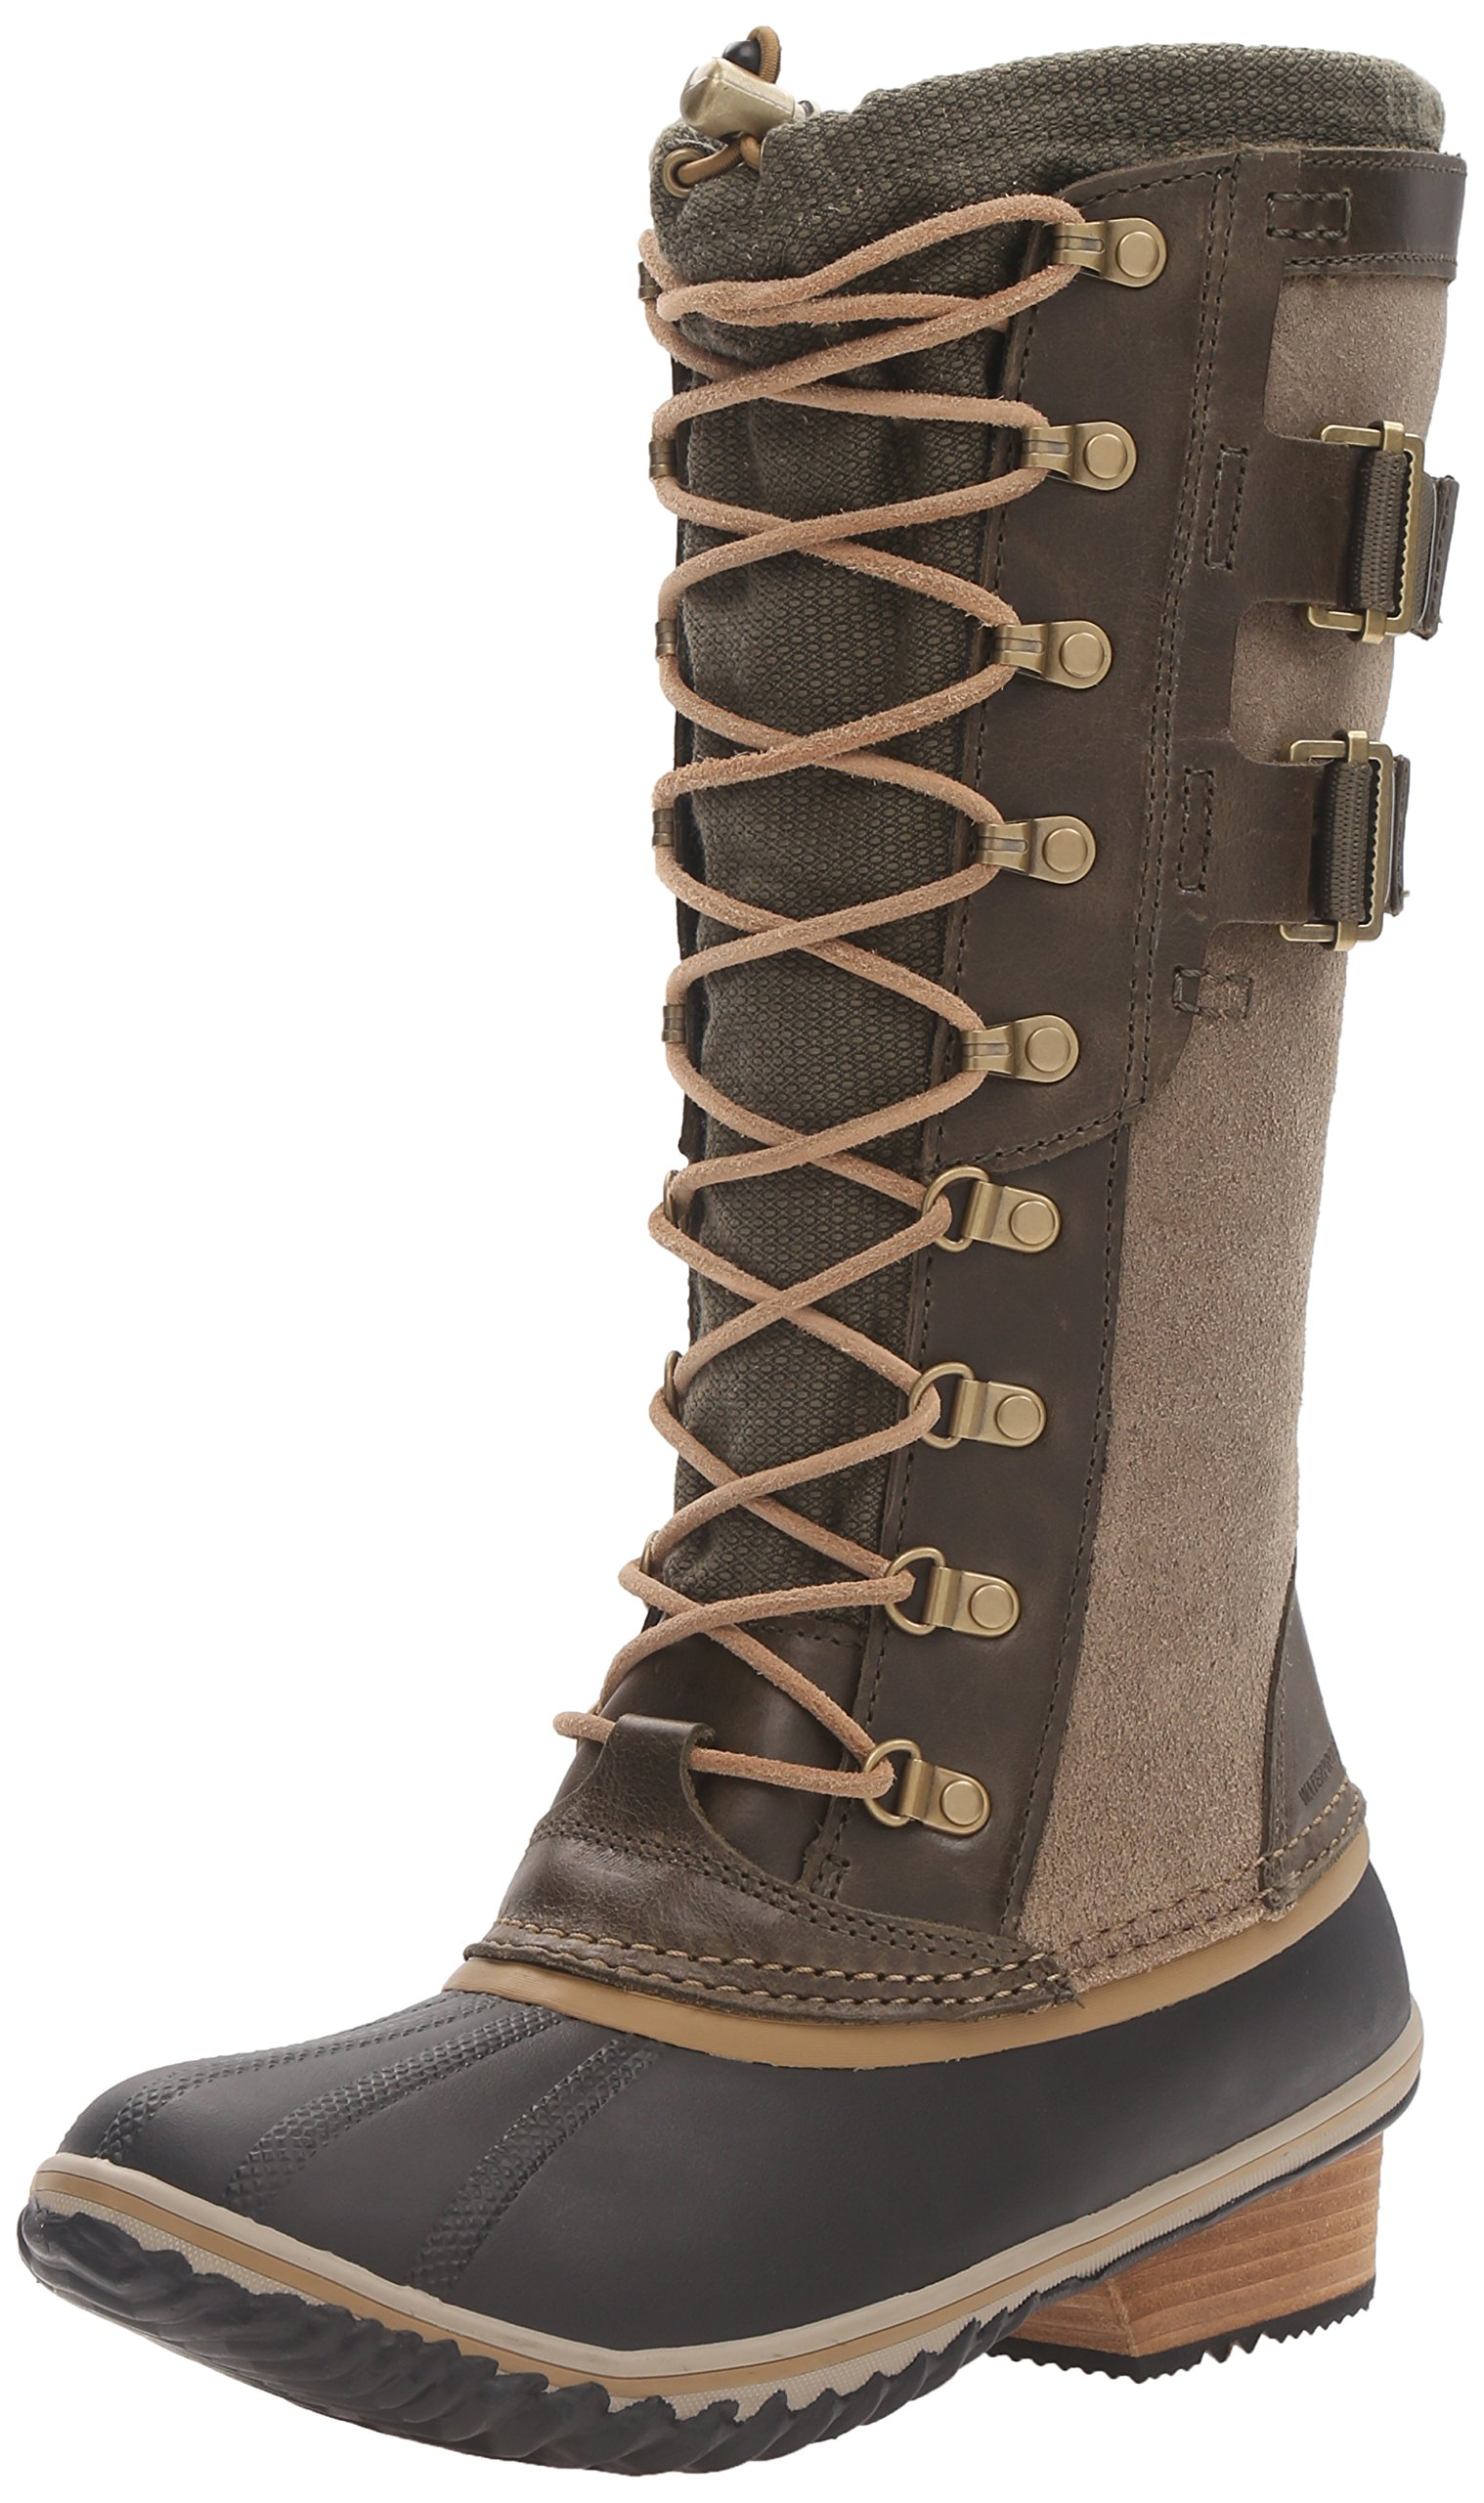 Sorel Women's Conquest Carly II Snow Boot, Peat Moss, Glare, 8.5 B US